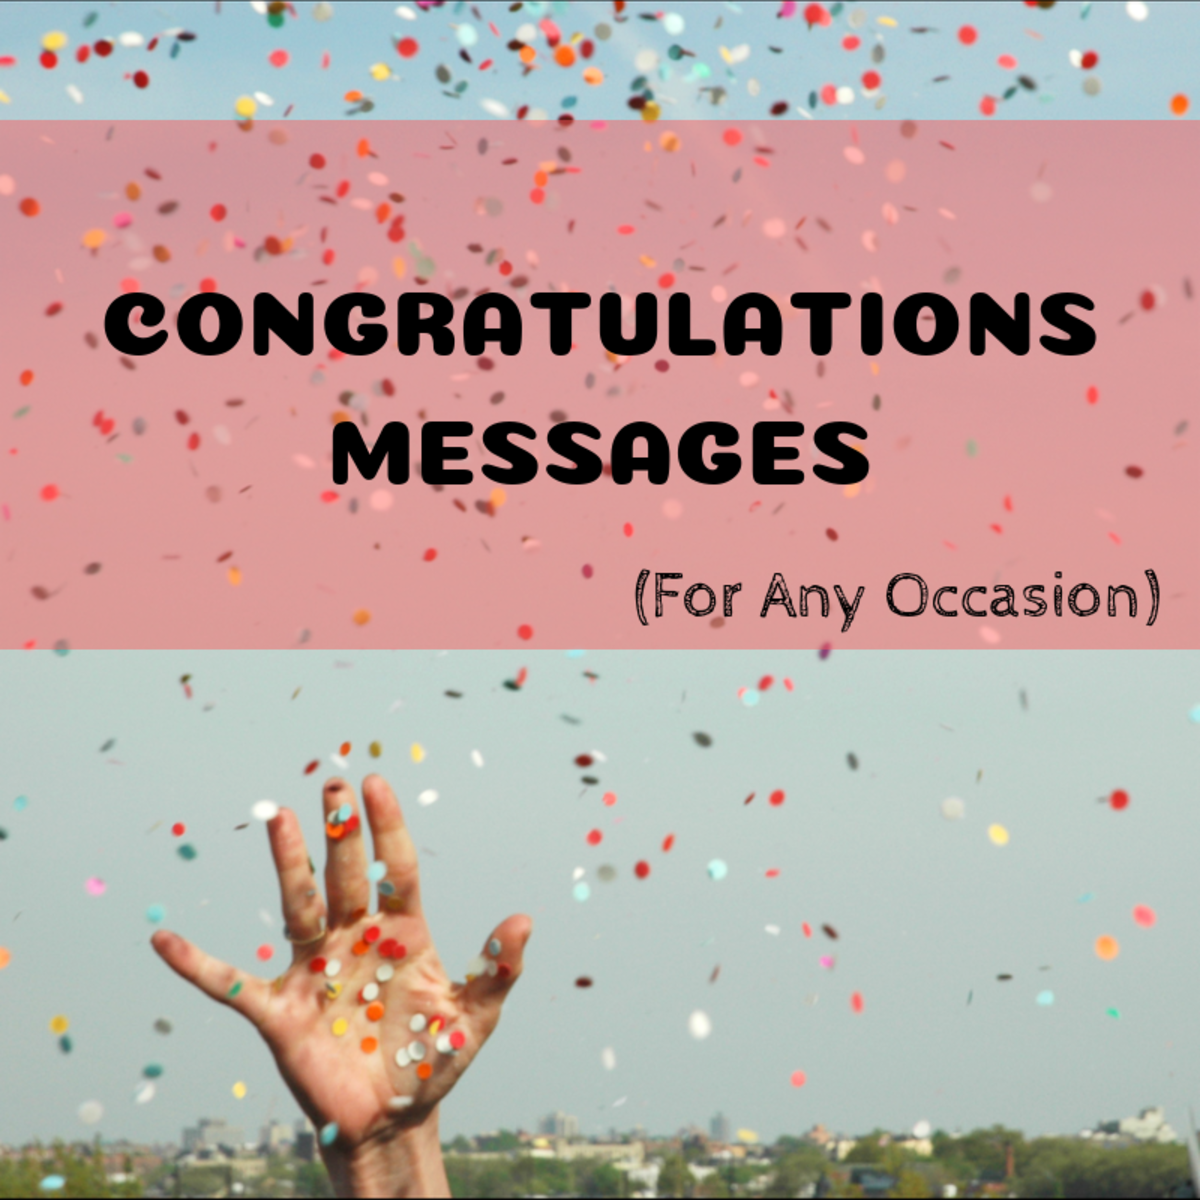 Congratulations Messages to Write in a Card